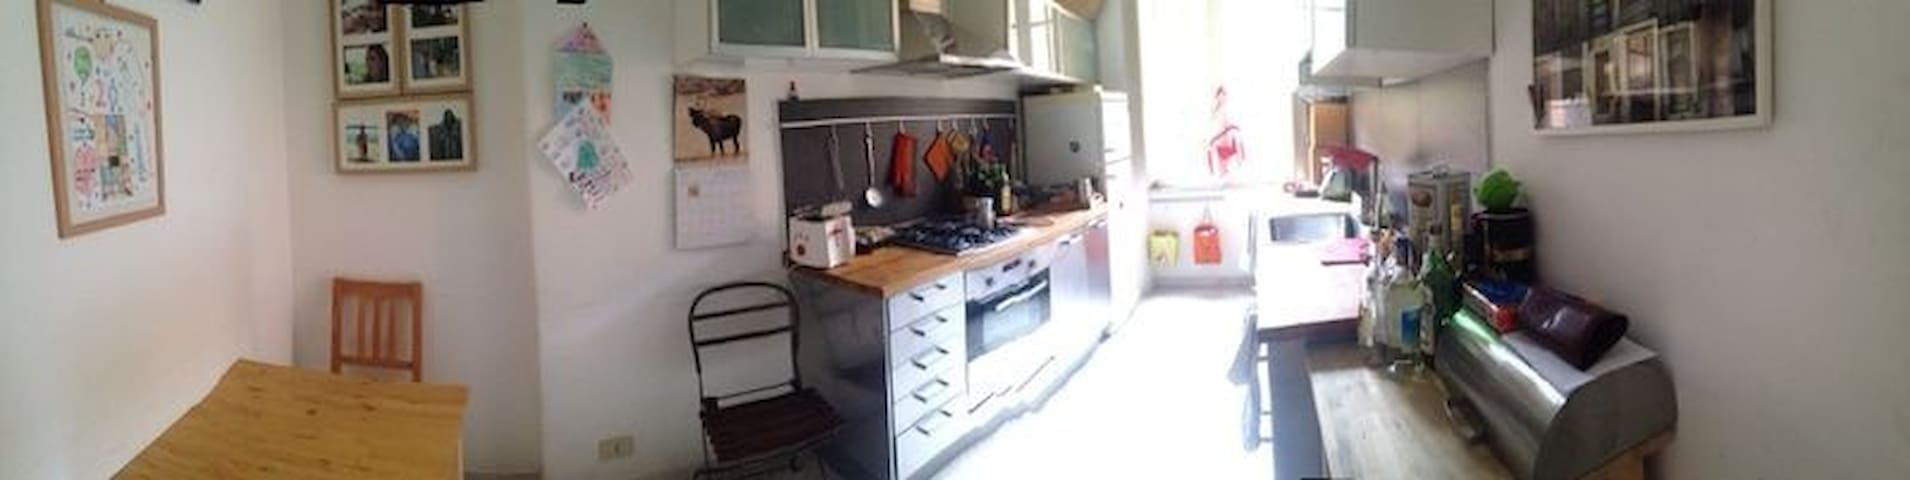 Lovely apt close to downtown - Rome - Appartement